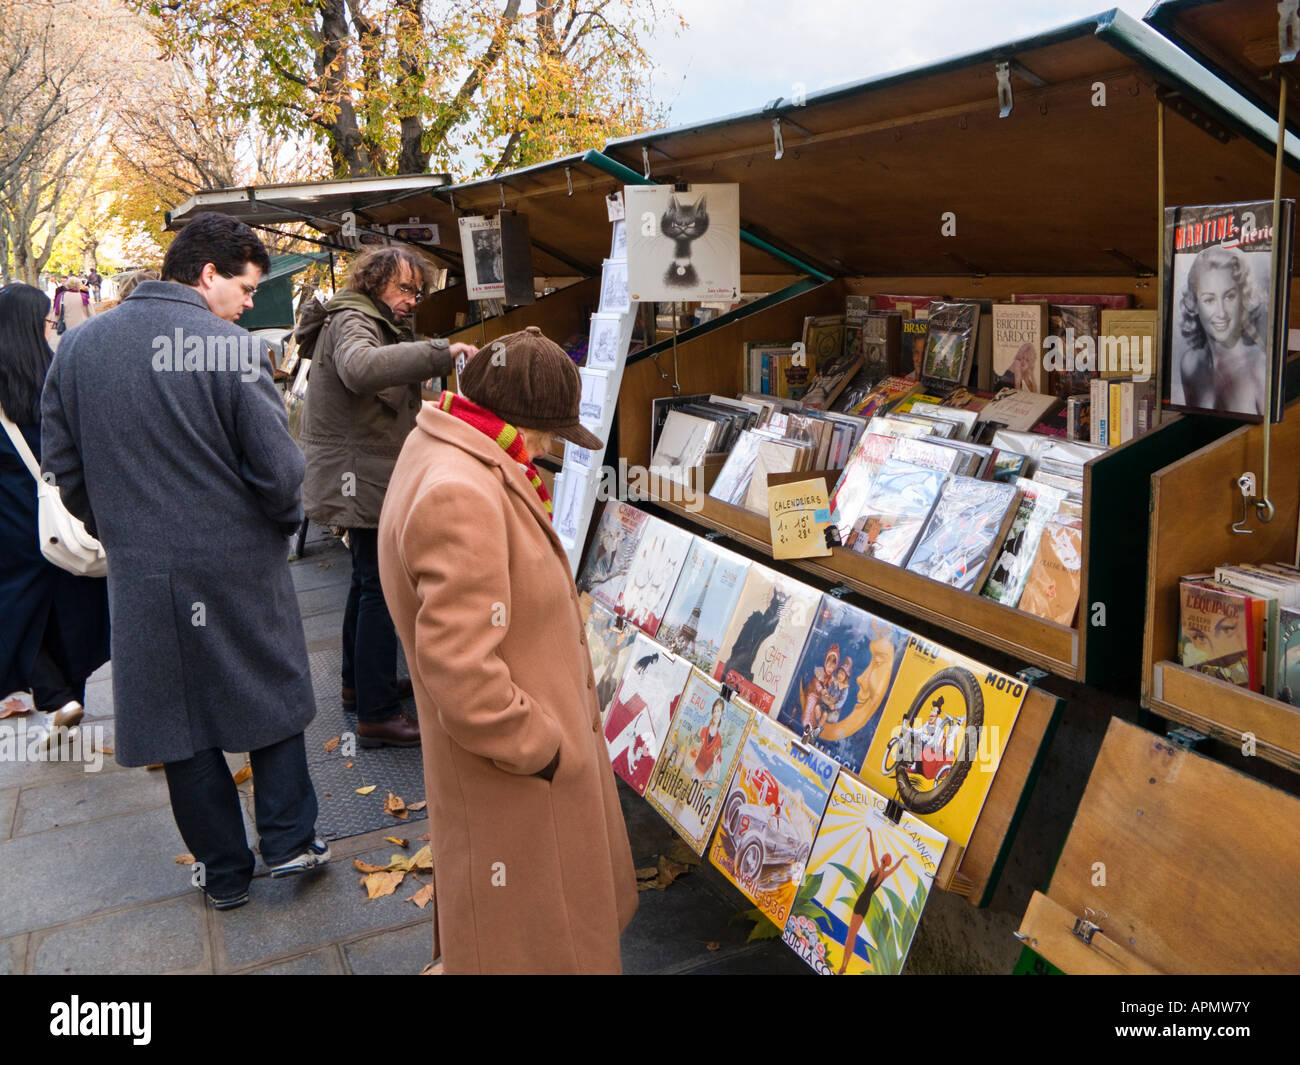 One of the open air stalls selling art and books on the left bank of the Seine, Paris, France Europe - Stock Image